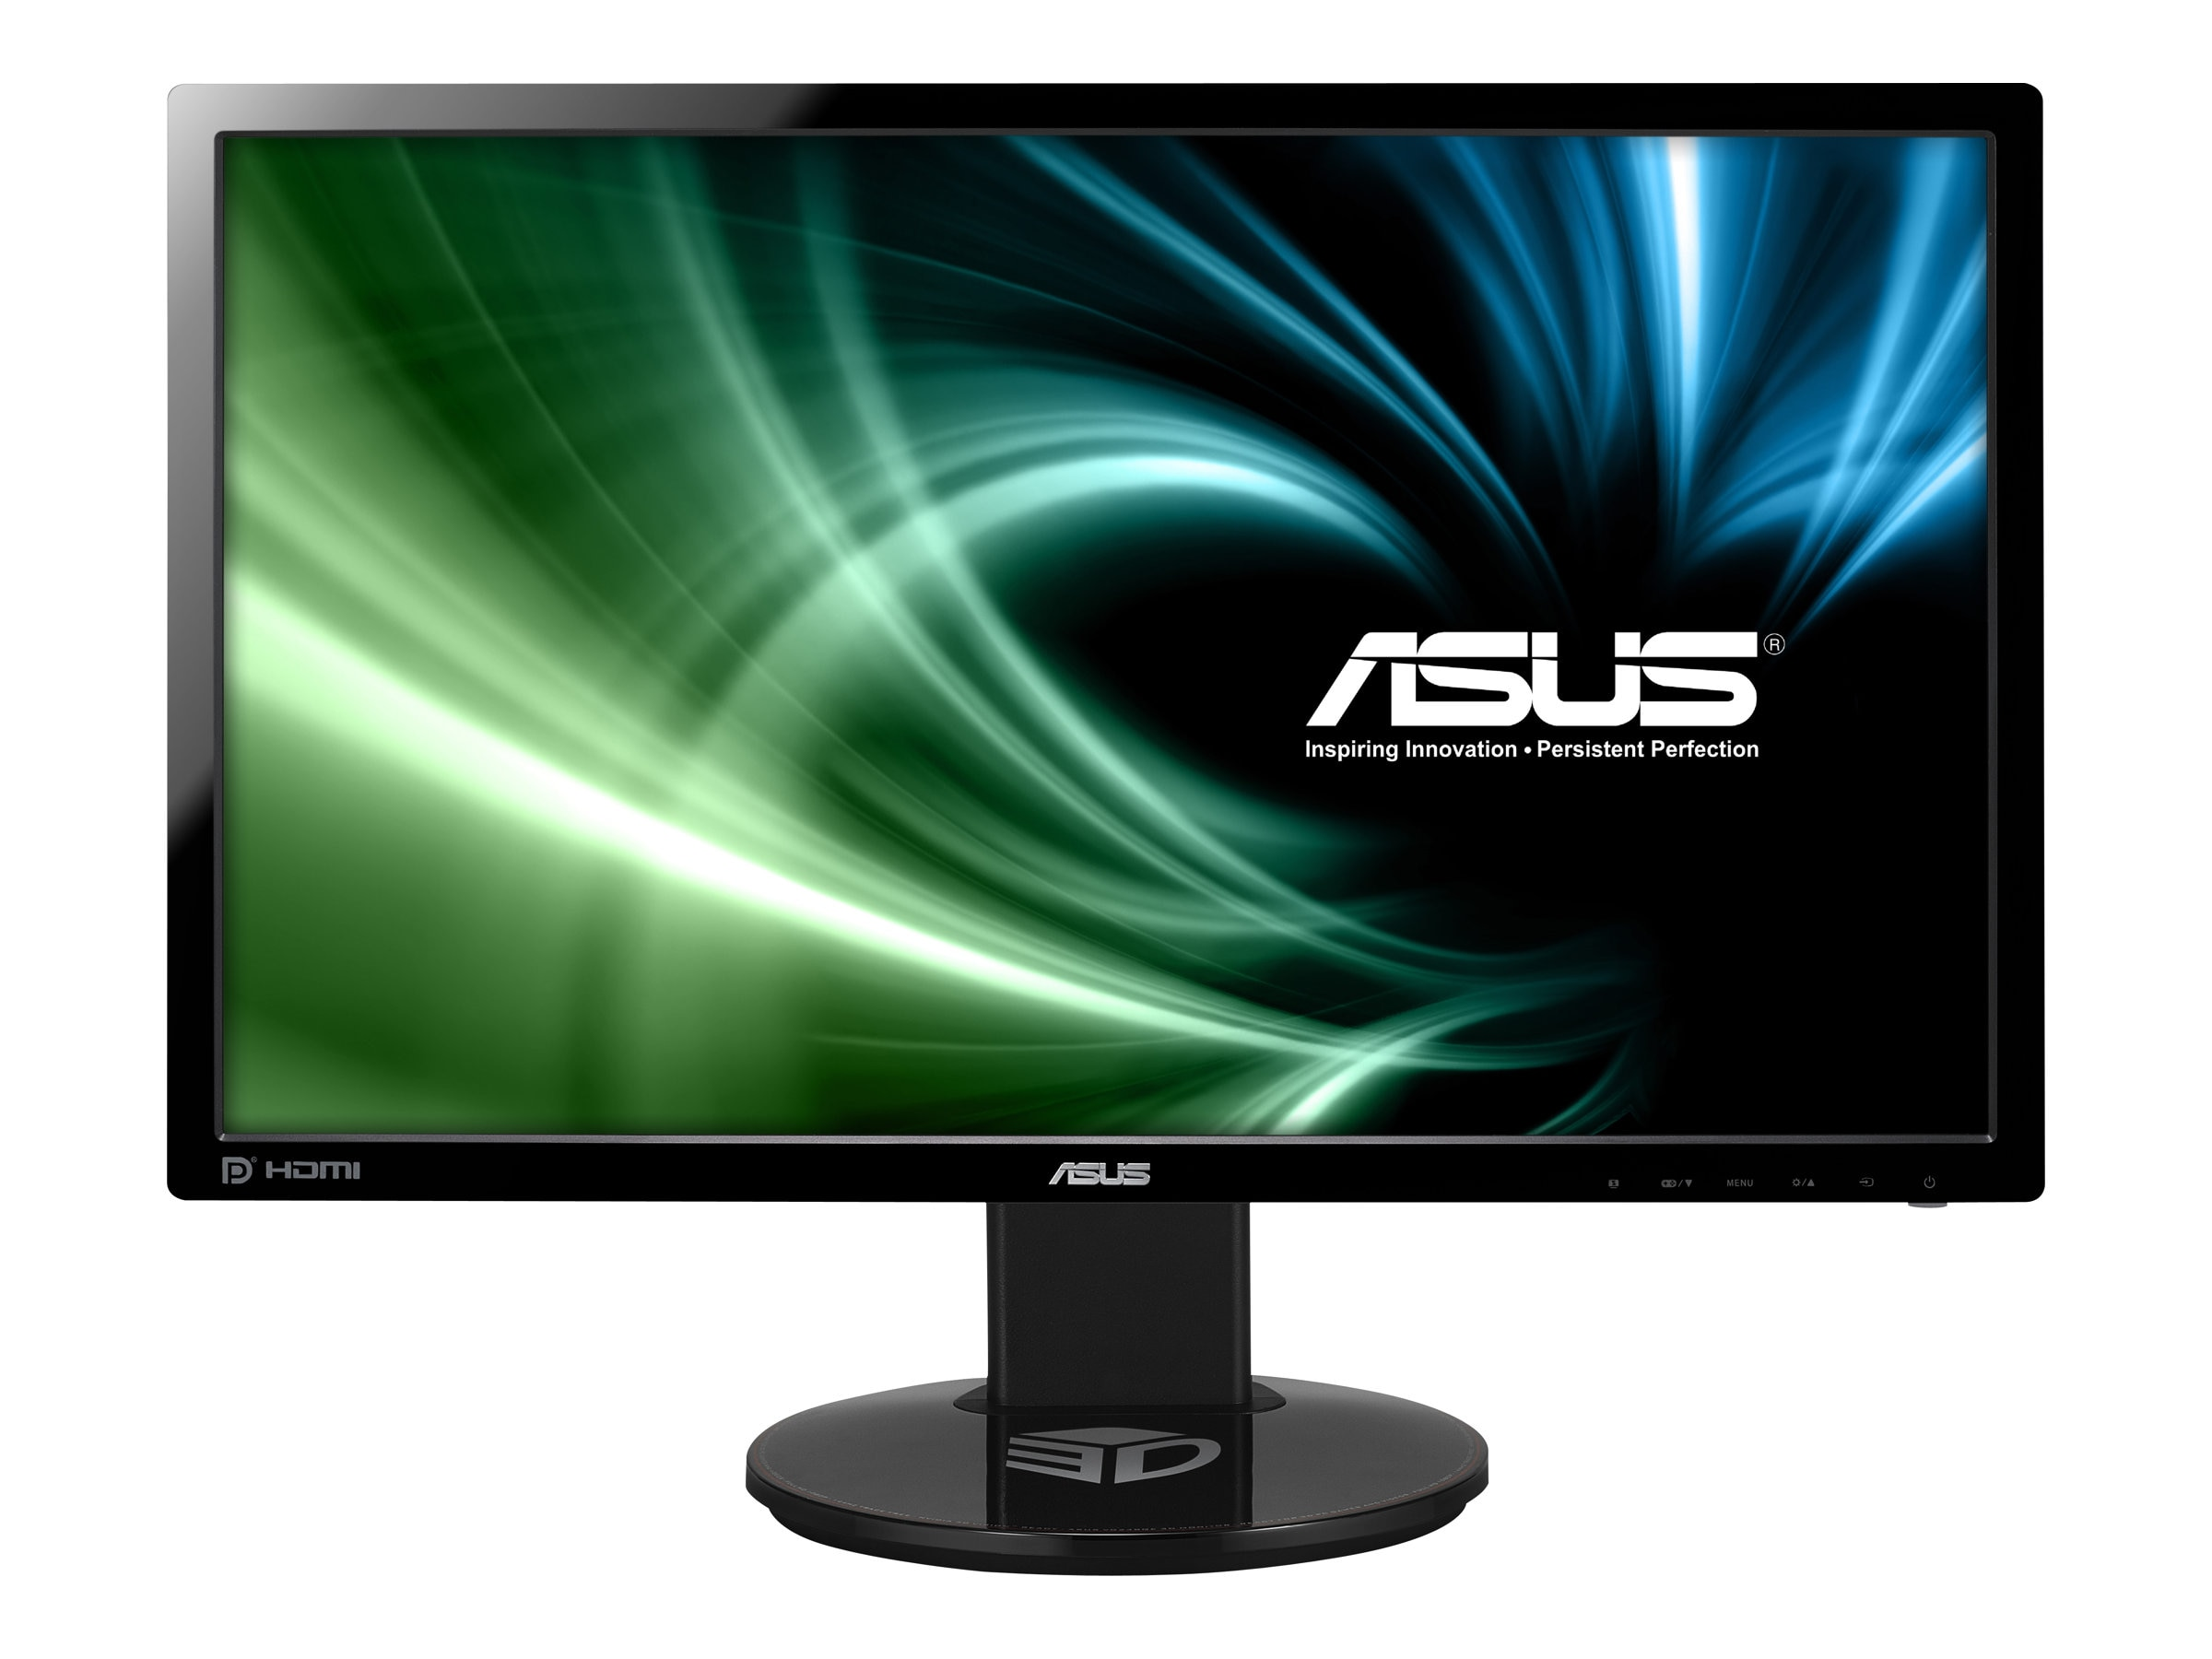 Open Box Asus 24 VG248QE Full HD LED-LCD Monitor, Black, VG248QE, 15791191, Monitors - LED-LCD